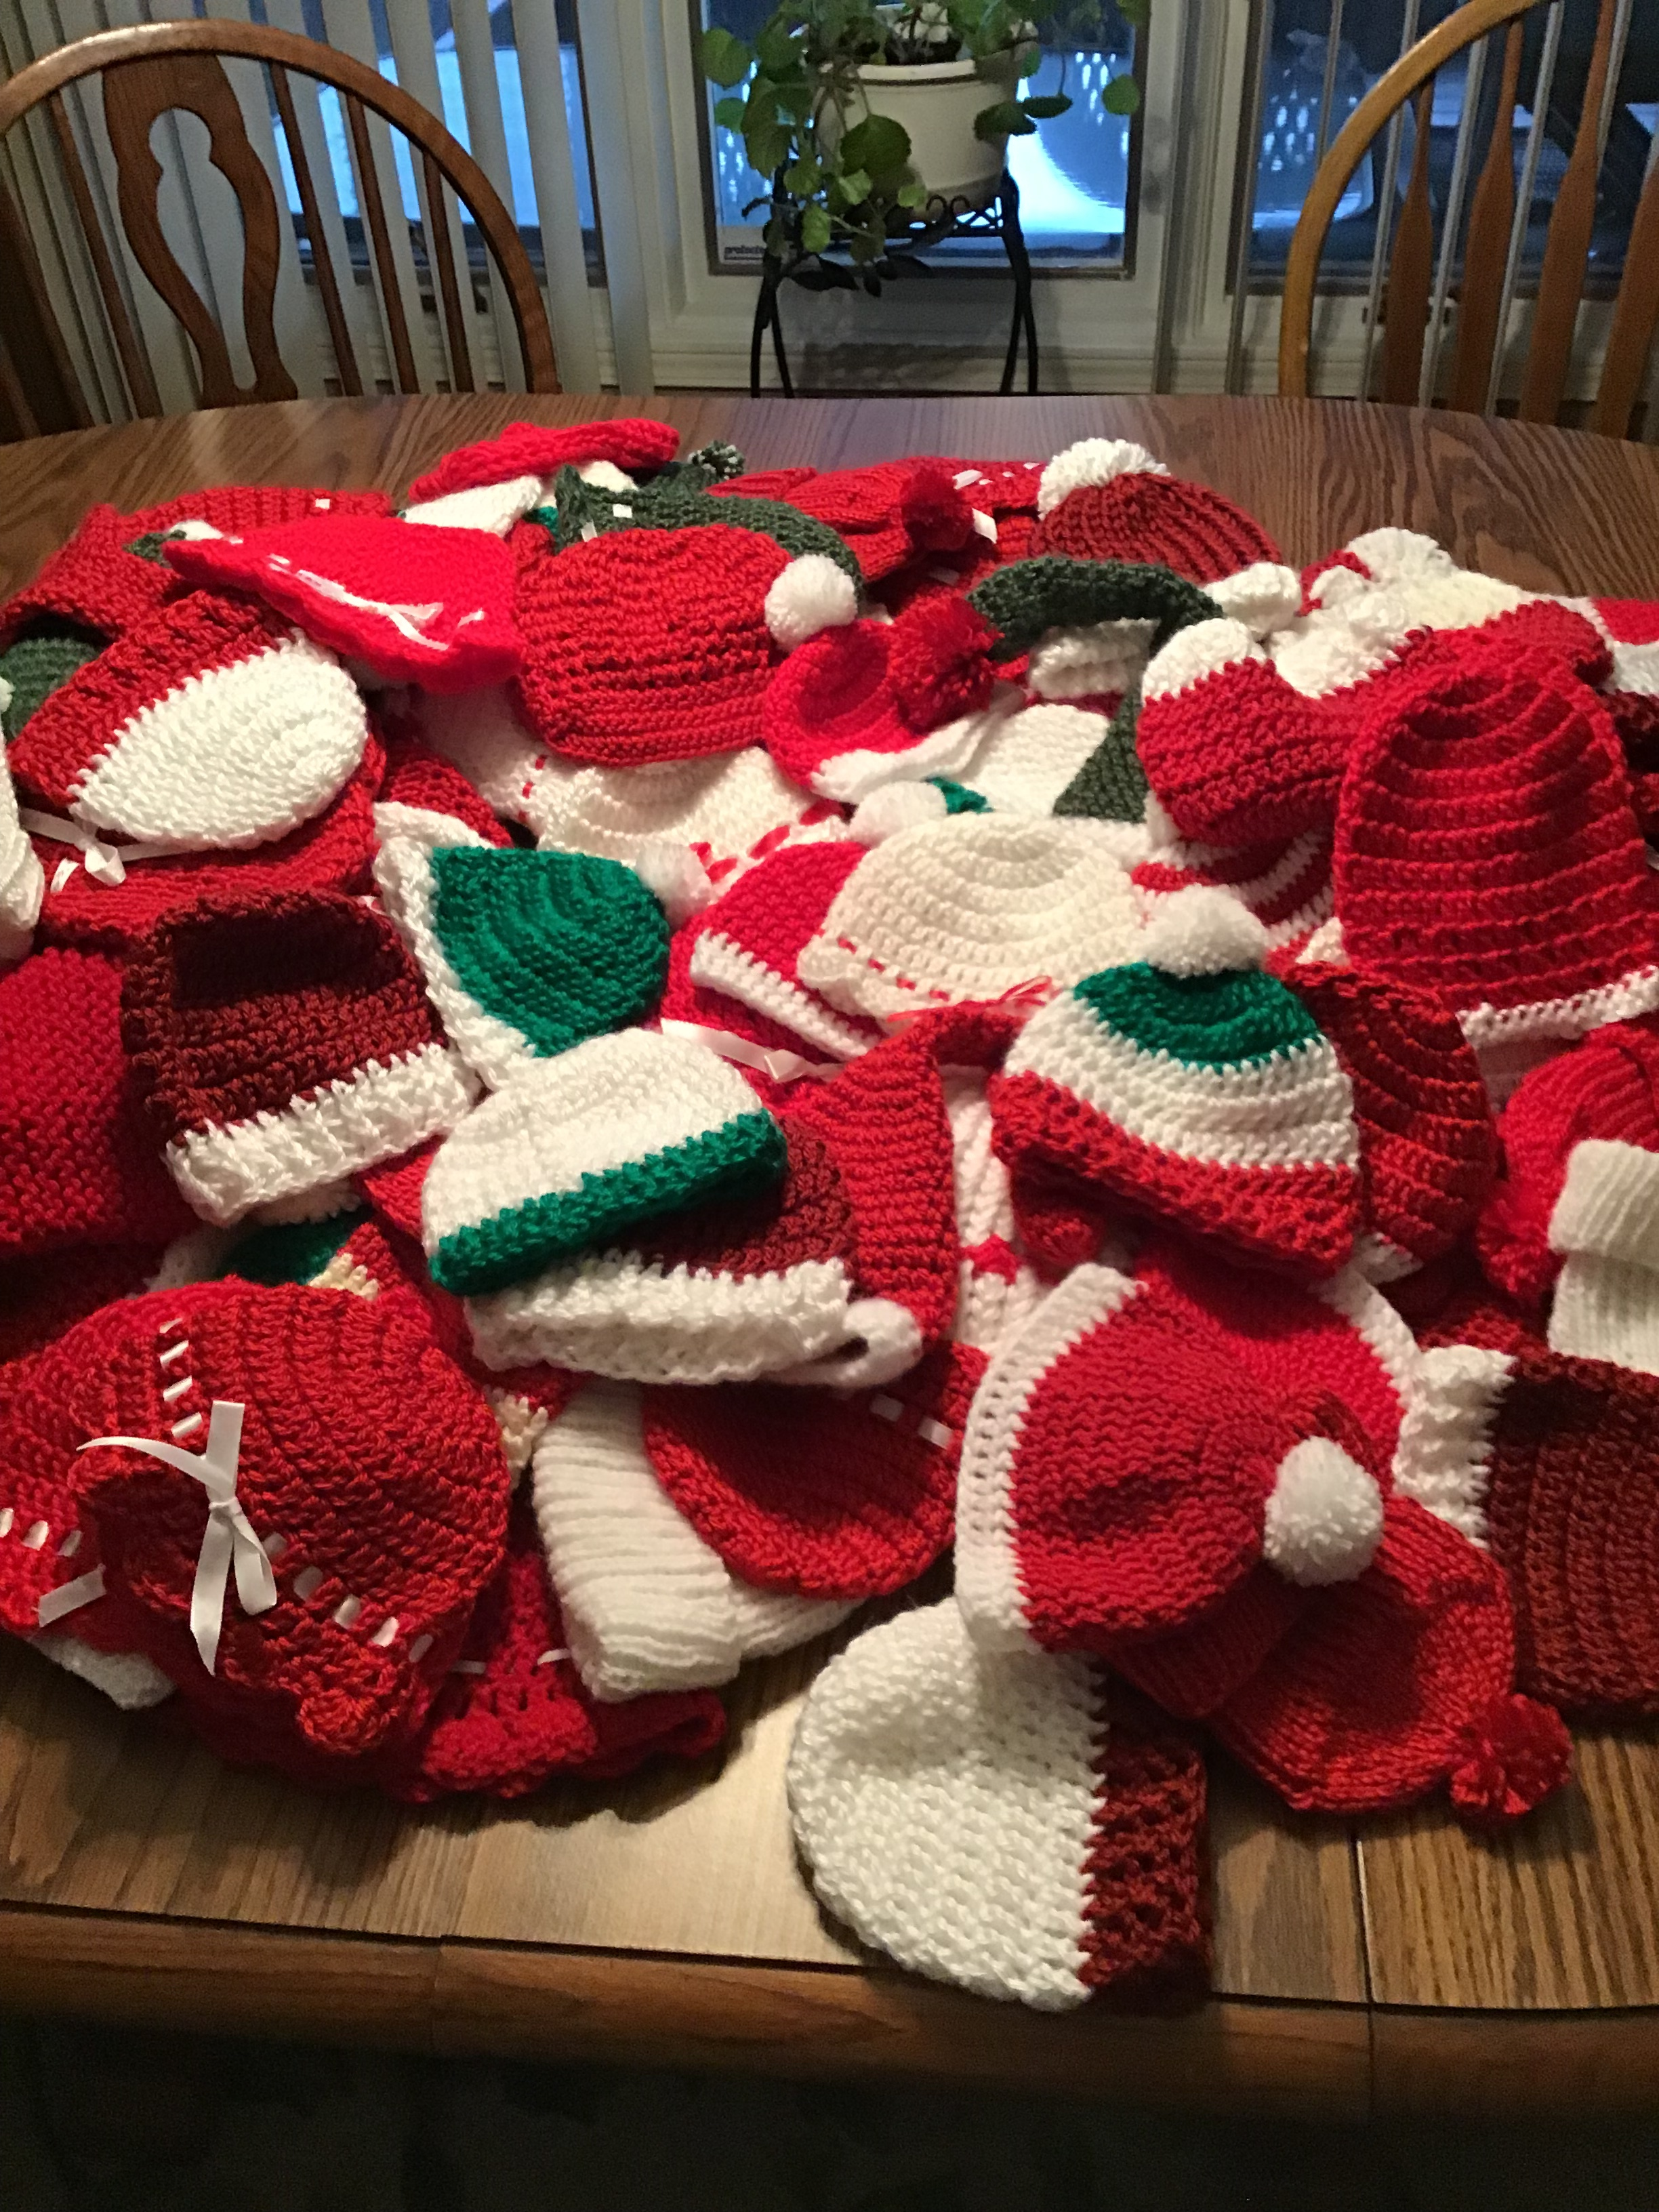 Baby hats made in Christmastime